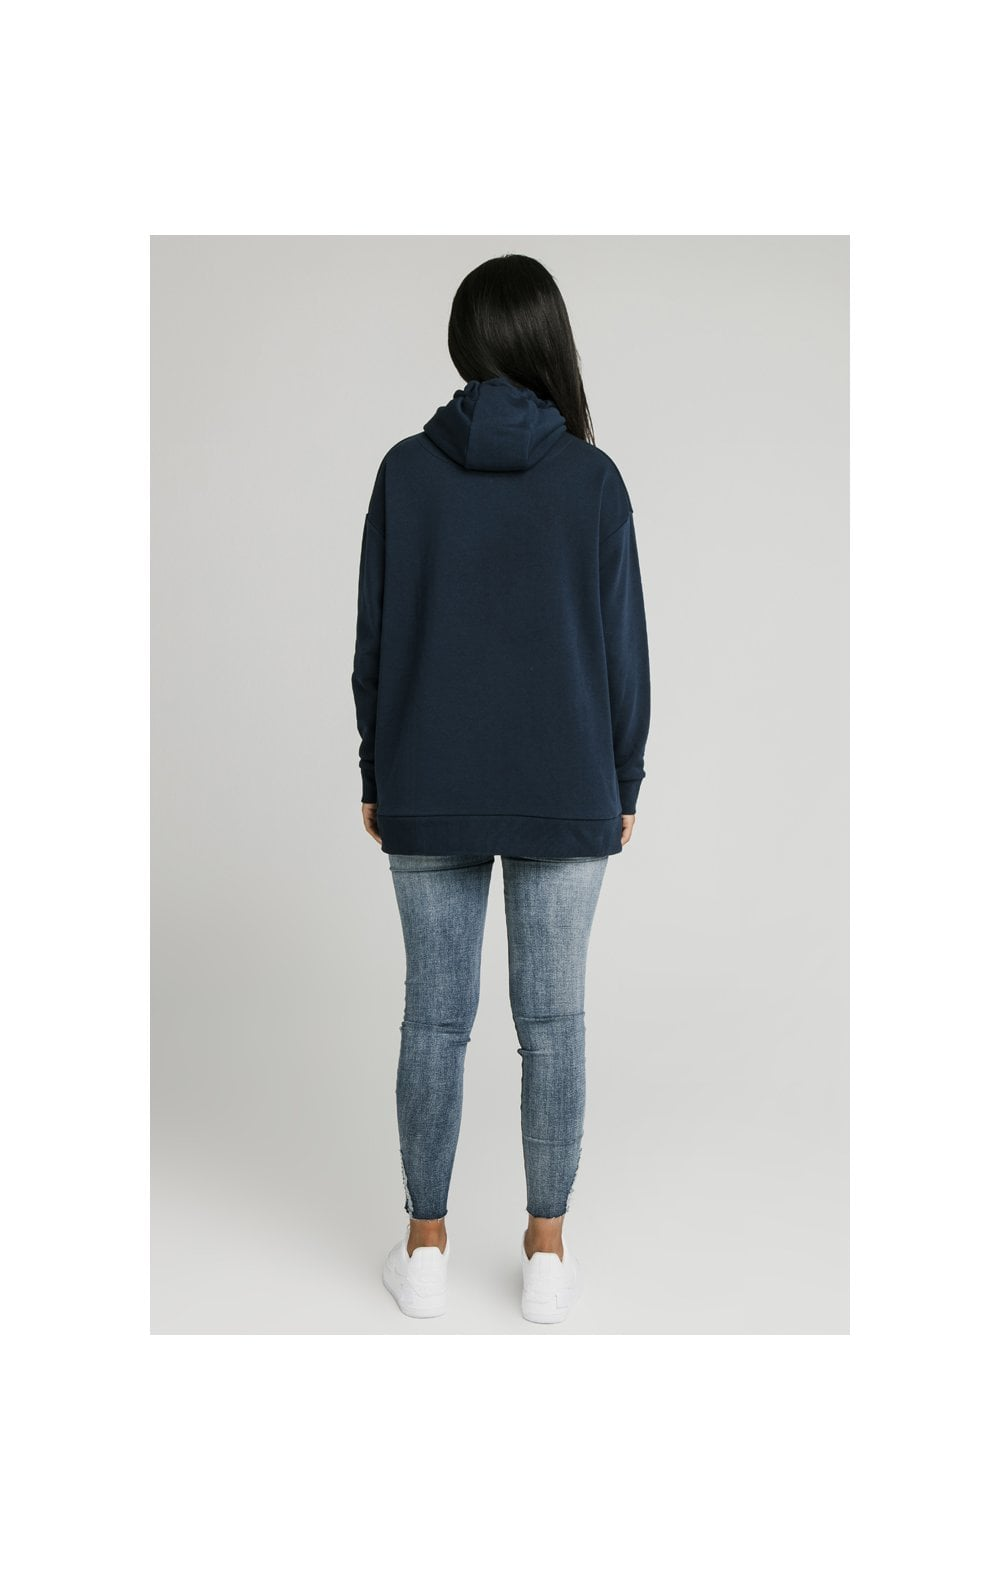 SikSilk Embroidered Oversize Hoodie - Navy (7)